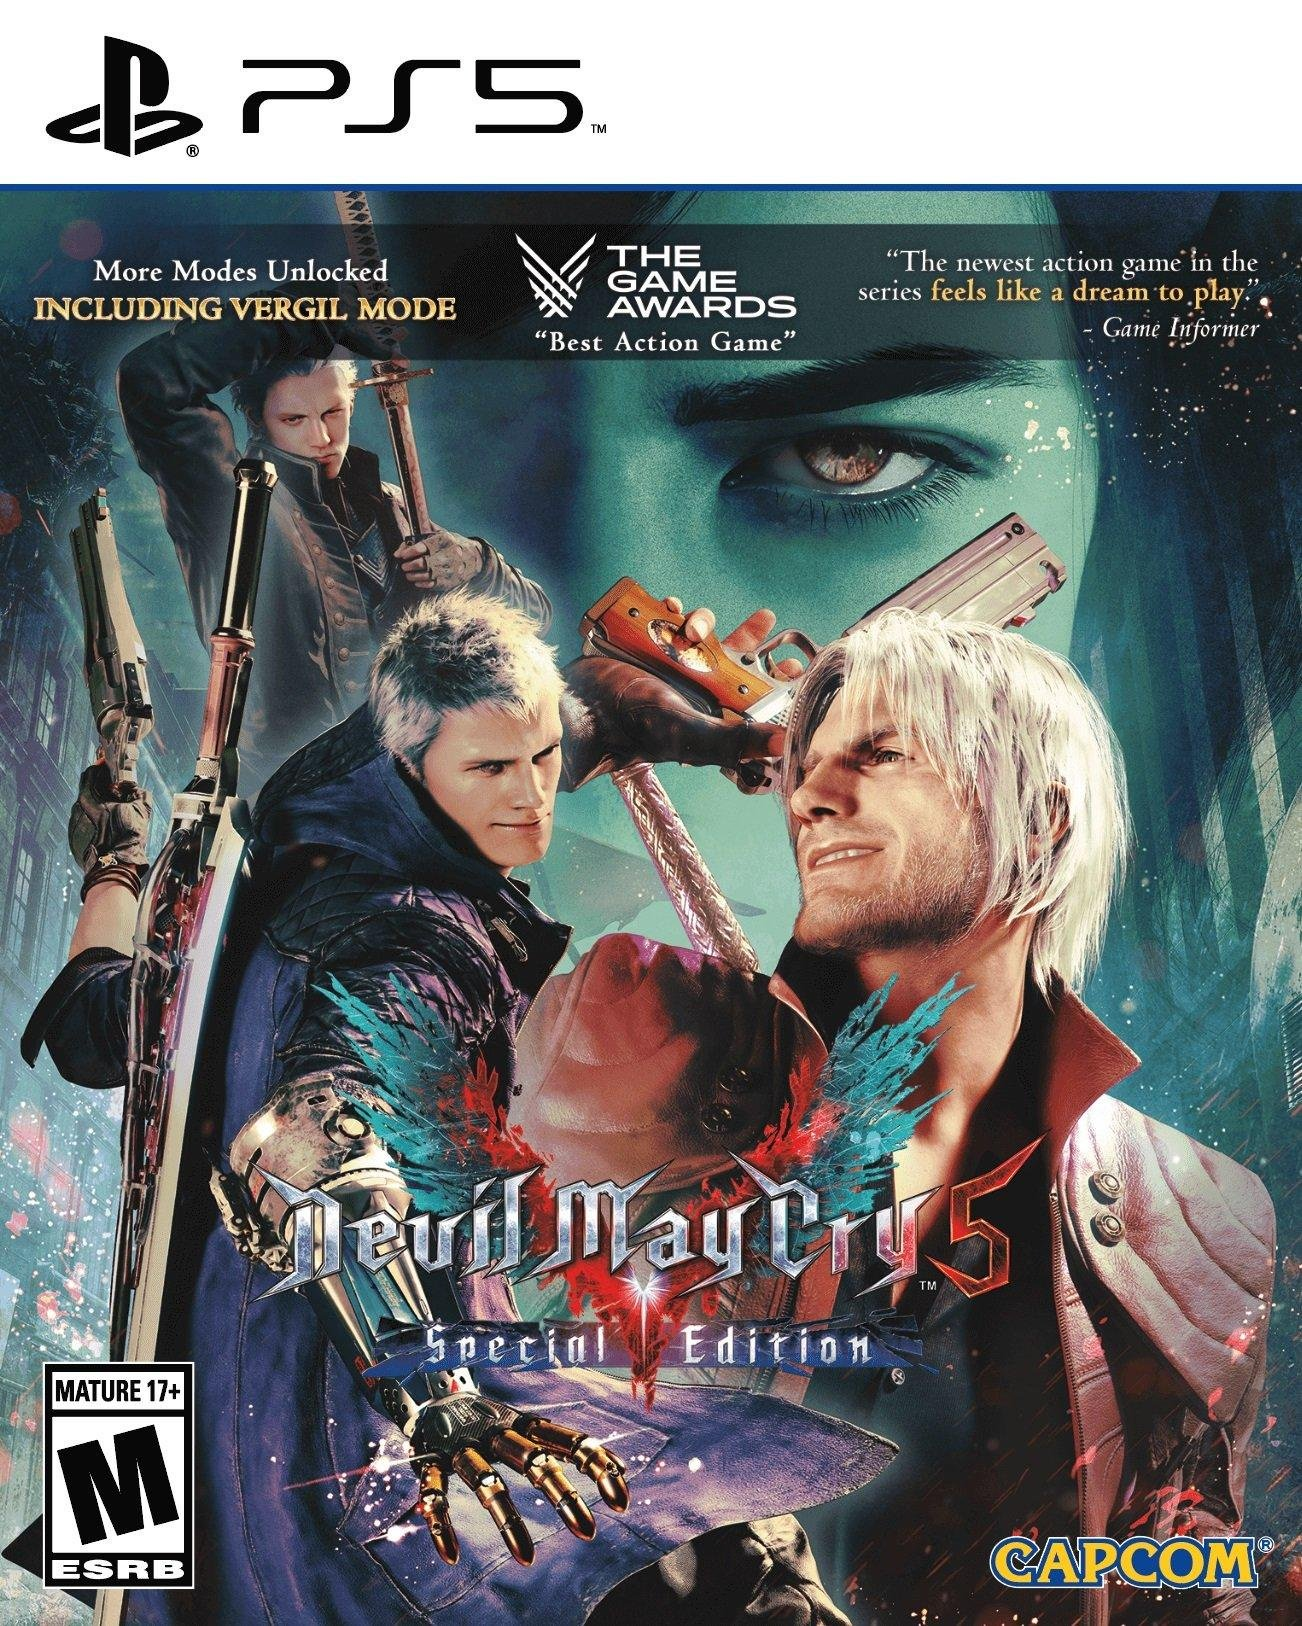 https://meups.com.br/wp-content/uploads/2020/09/DEVIL-MAY-CRY-5-SPECIAL-EDITION.jpg